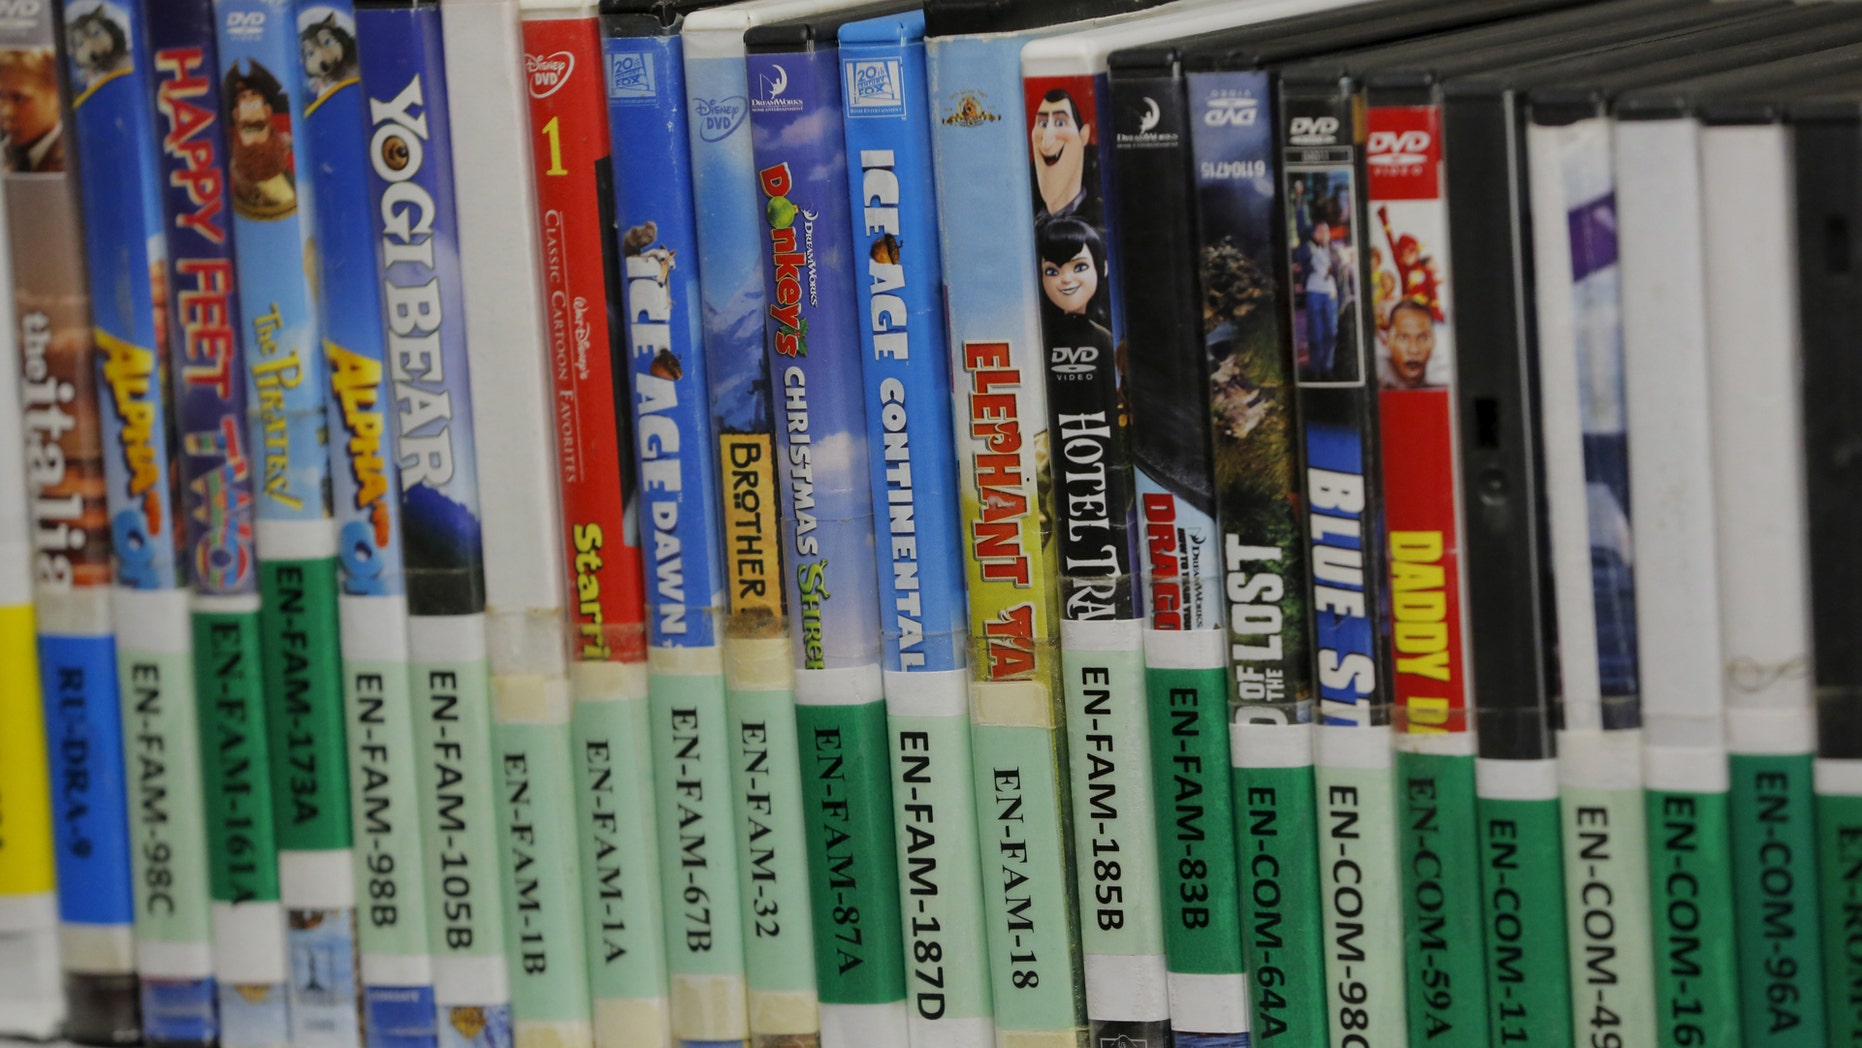 File photo: DVDs that can be borrowed by detainees rest on a shelf inside of Joint Task Force Guantanamo's detainee library at the U.S. Naval Base in Guantanamo Bay, Cuba March 22, 2016. (REUTERS/Lucas Jackson)